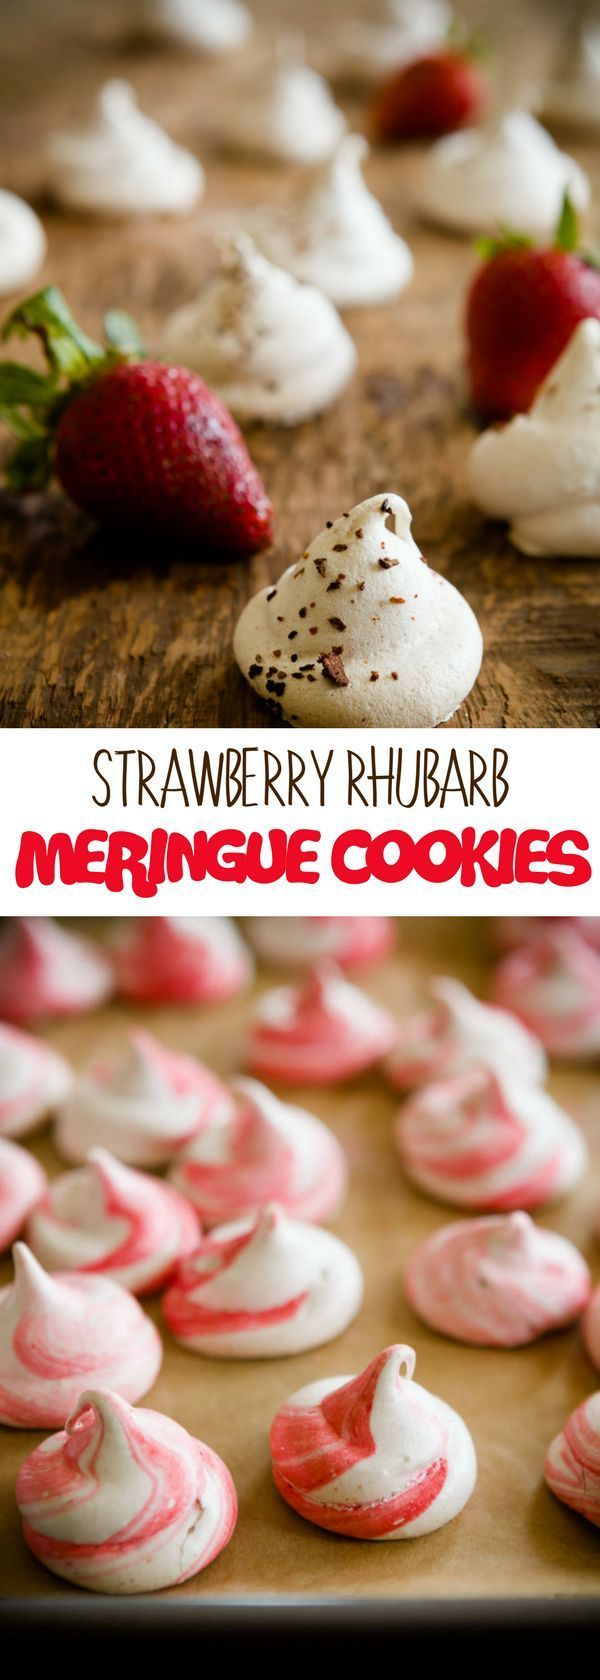 Strawberry Rhubarb Meringue Cookies - sweet delicious dessert recipe perfect for any party! For more simple baking desserts recipes and homemade sweet treats, check us out at #cupcakeproject. #desserts #yummydesserts #recipeoftheday #sweettooth